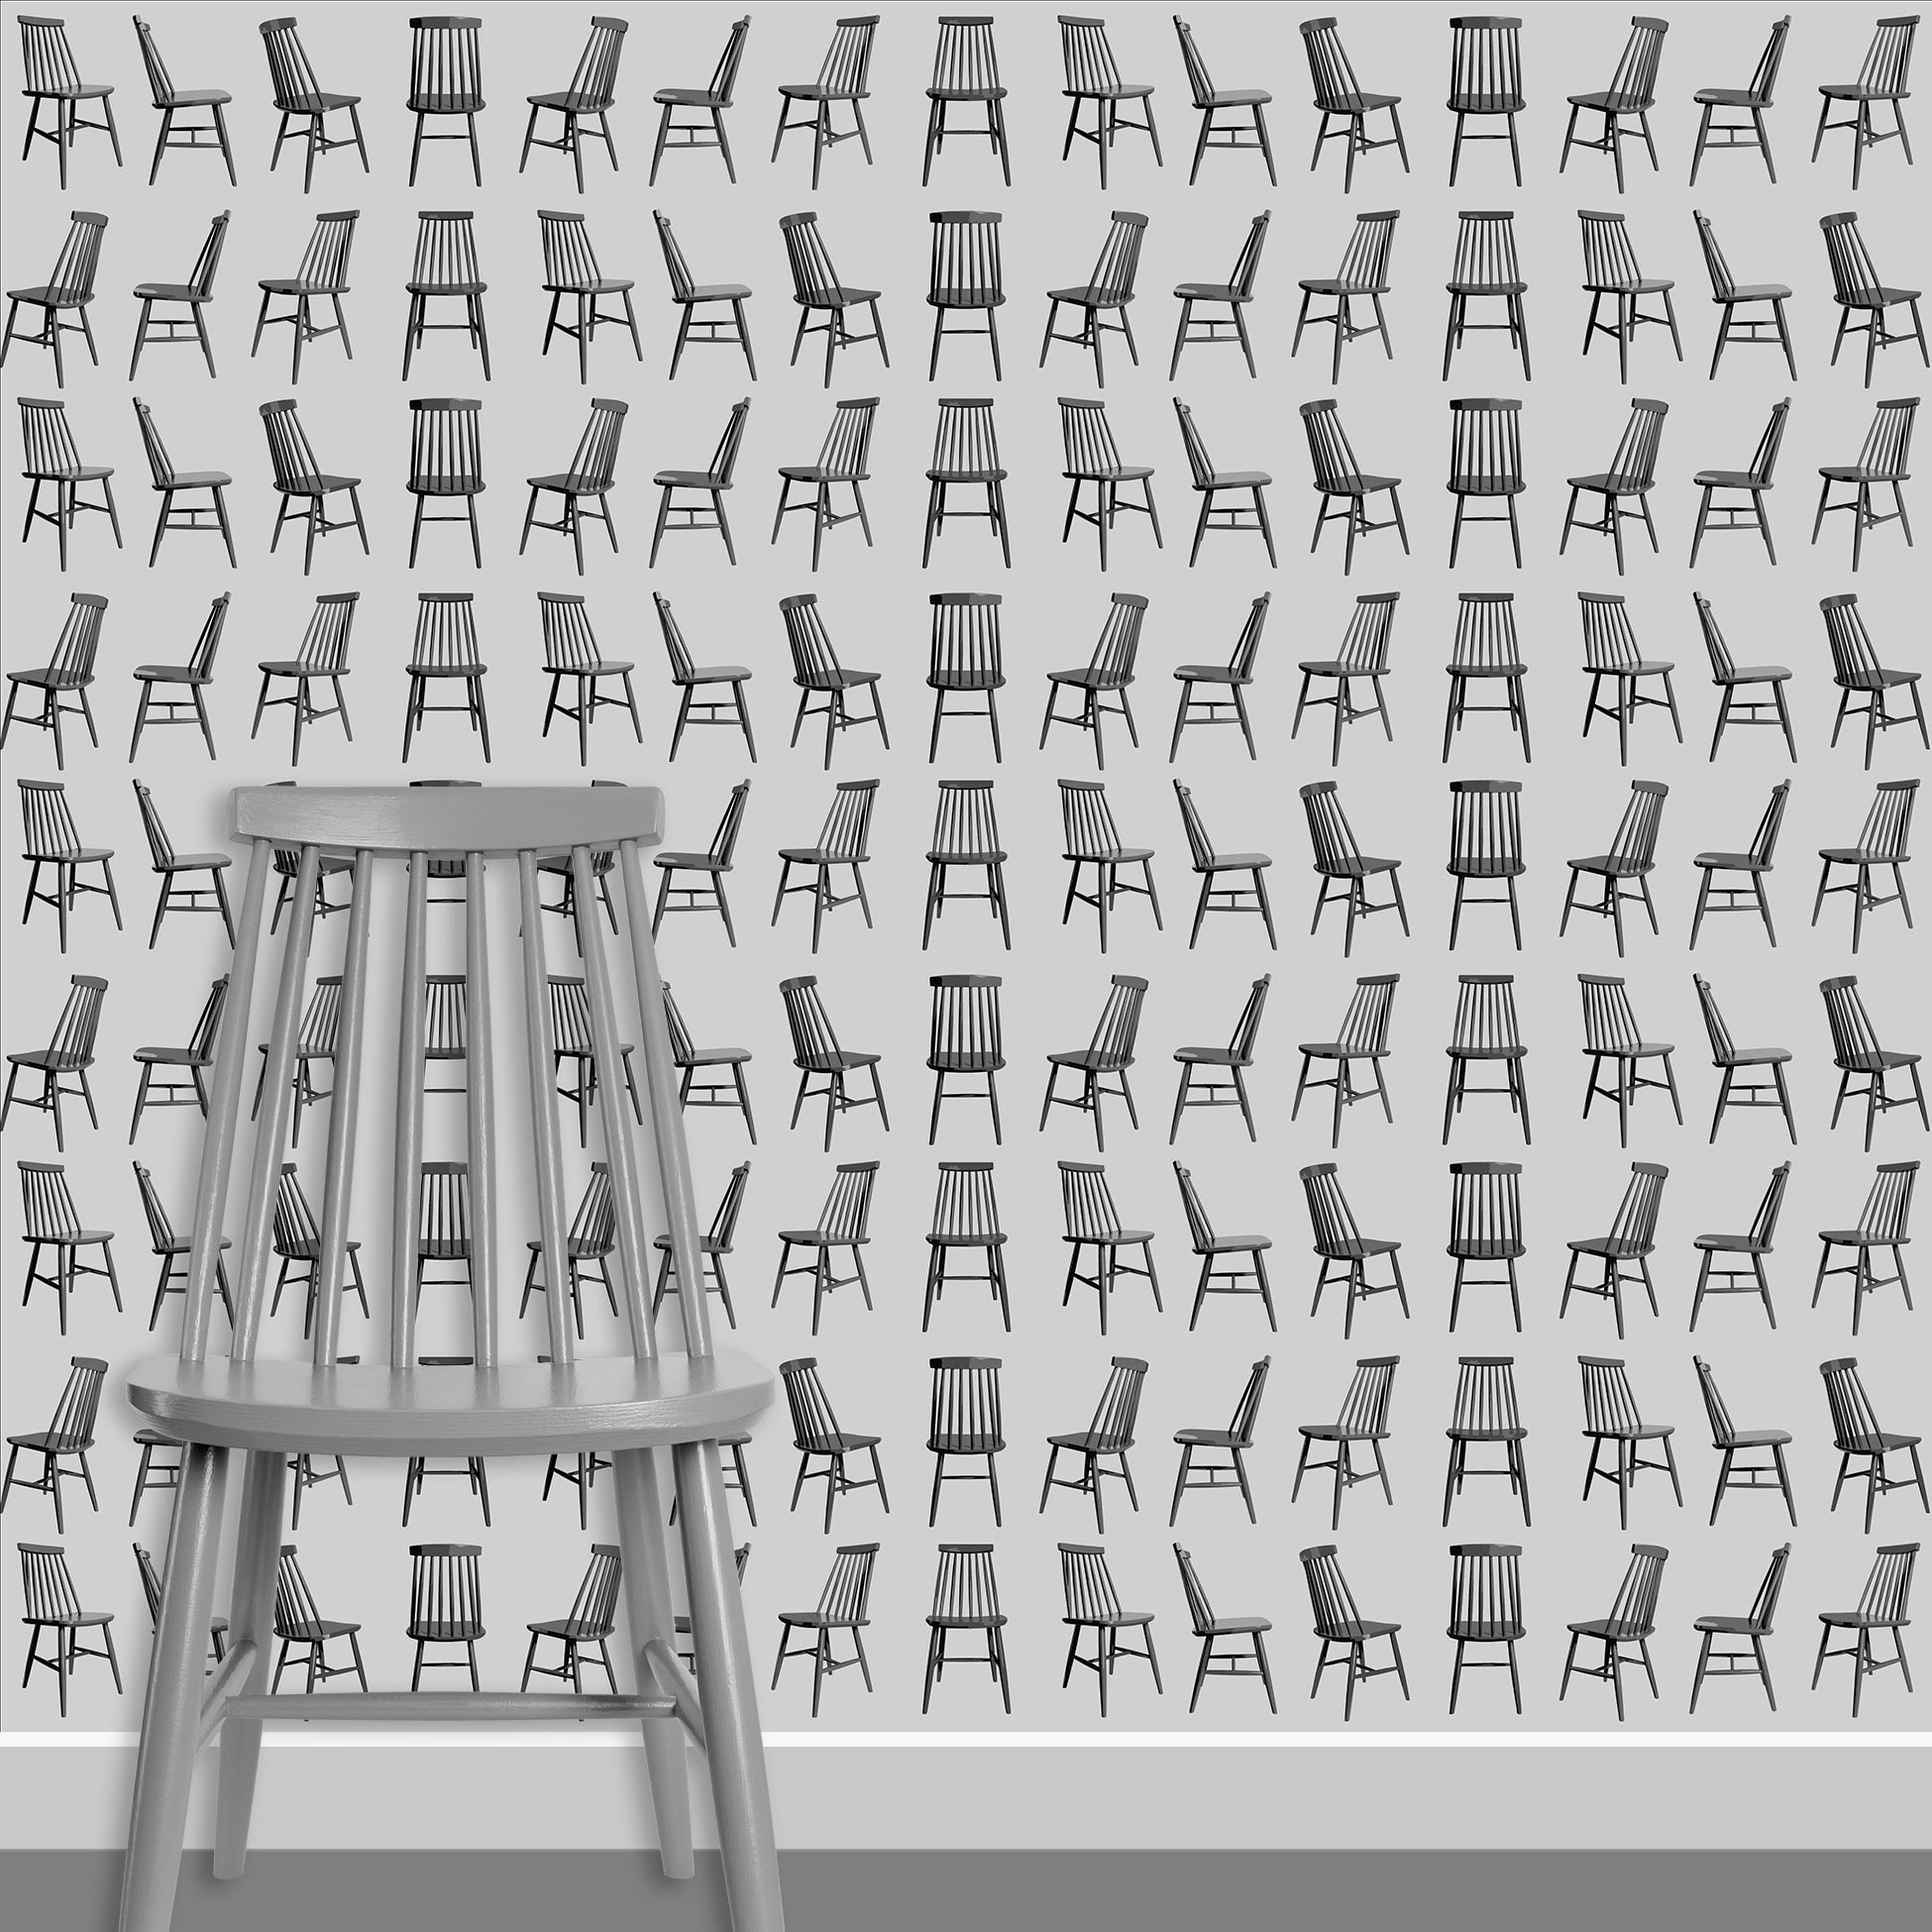 Contact Page Square - Mid Century Modern Chairs Pattern Design 9